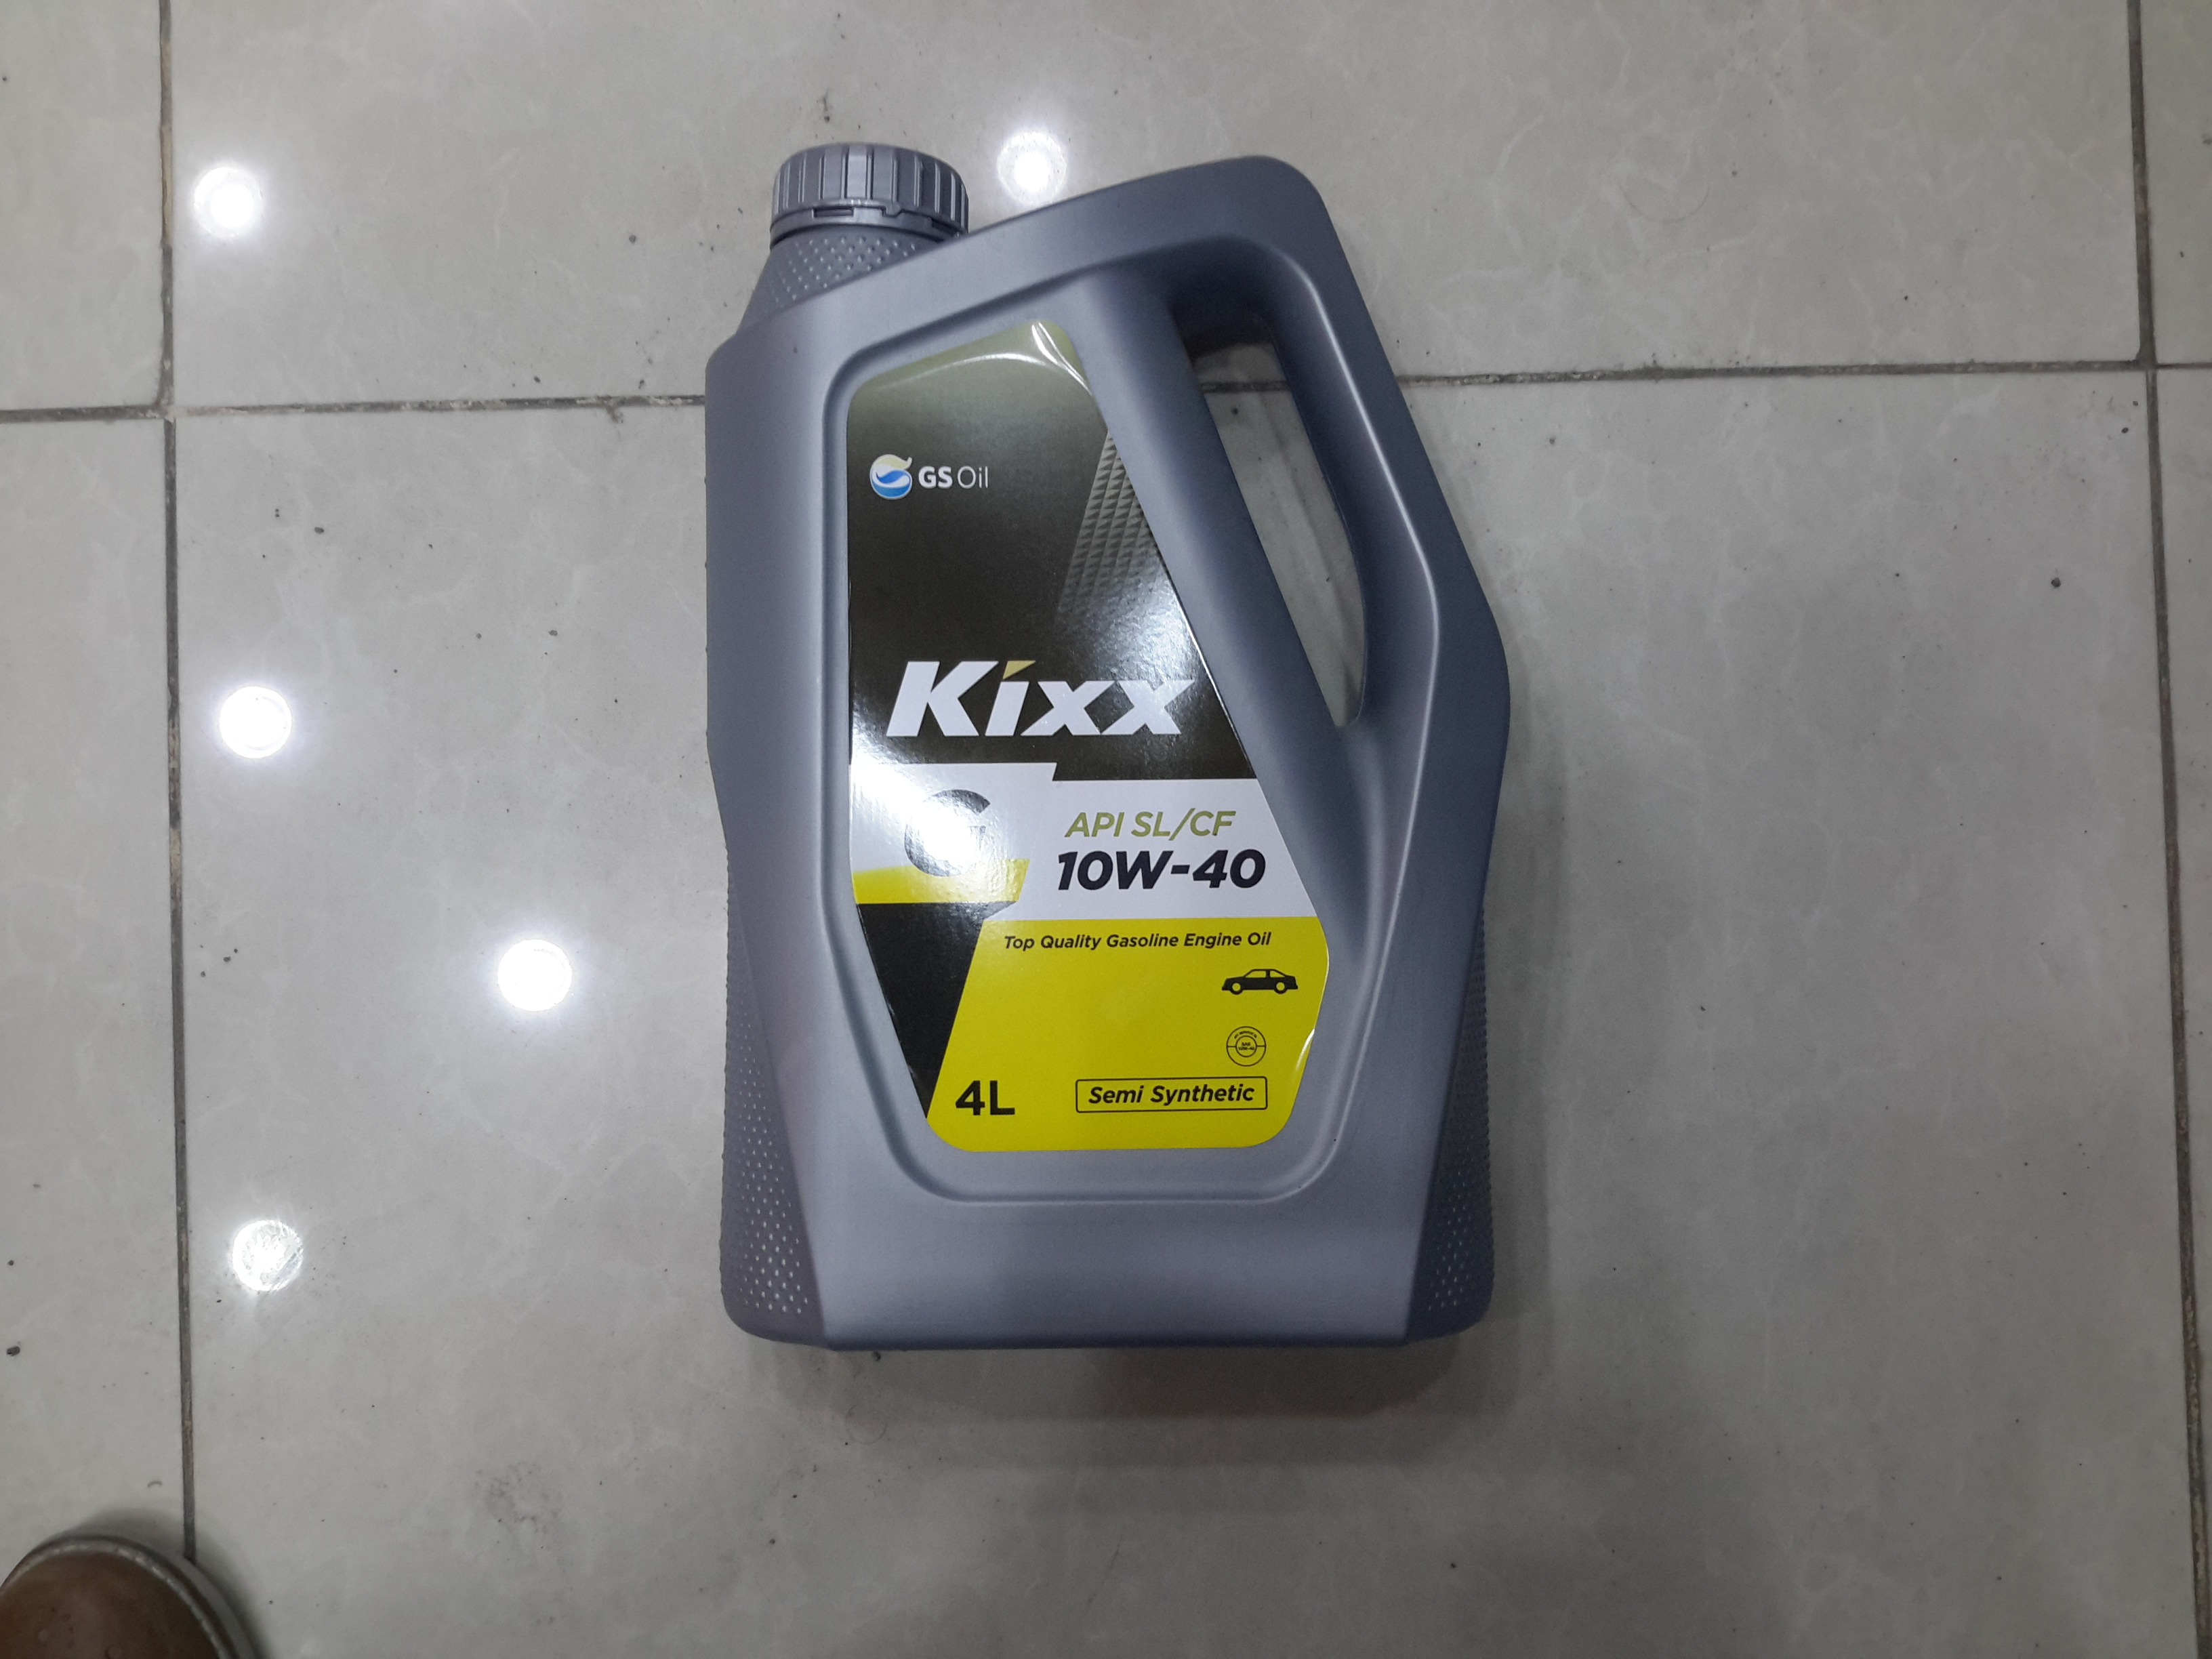 Kixx 10w/40 engine oil